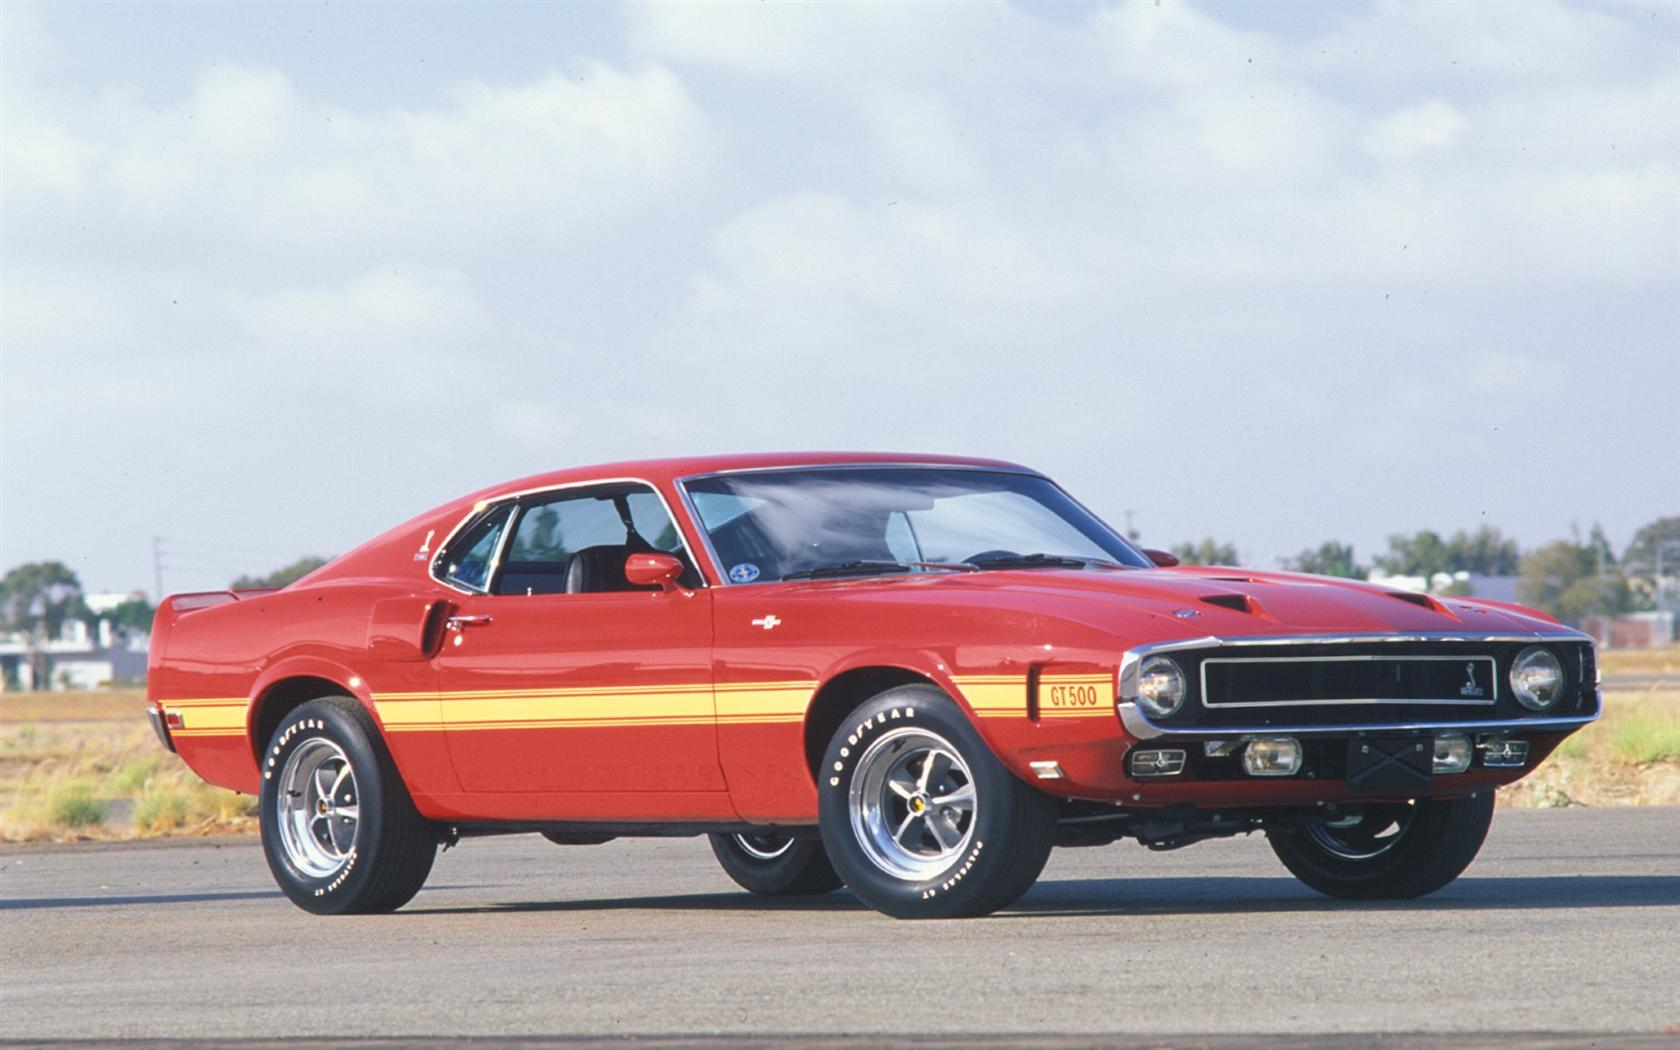 1969 shelby mustang gt500 history pictures value auction sales research and news